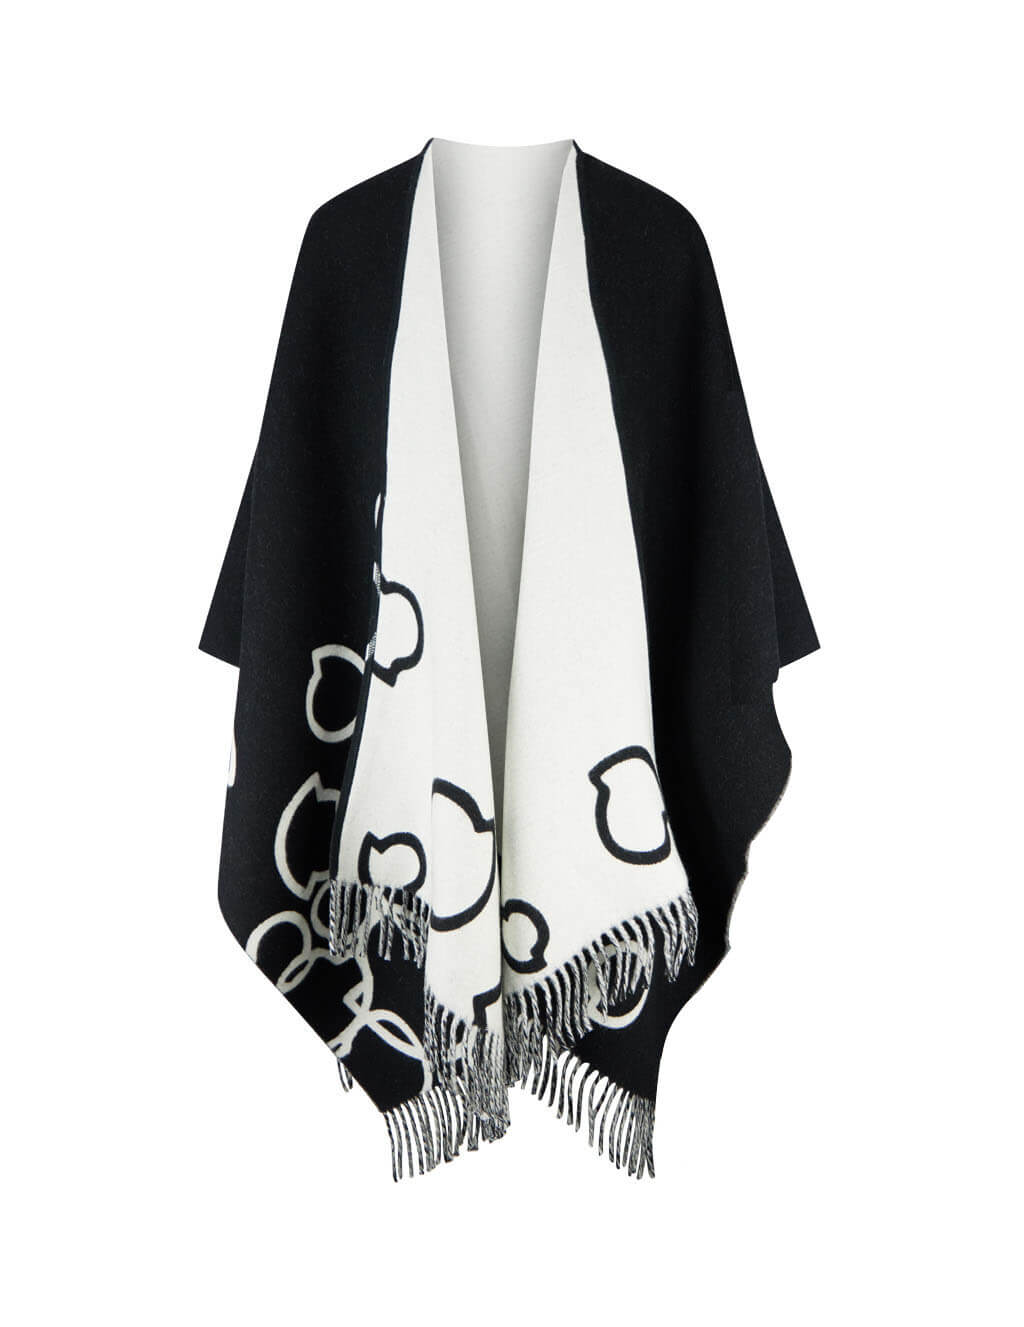 Women's Black and White Moncler Logo Cape 0933G71600A0104999